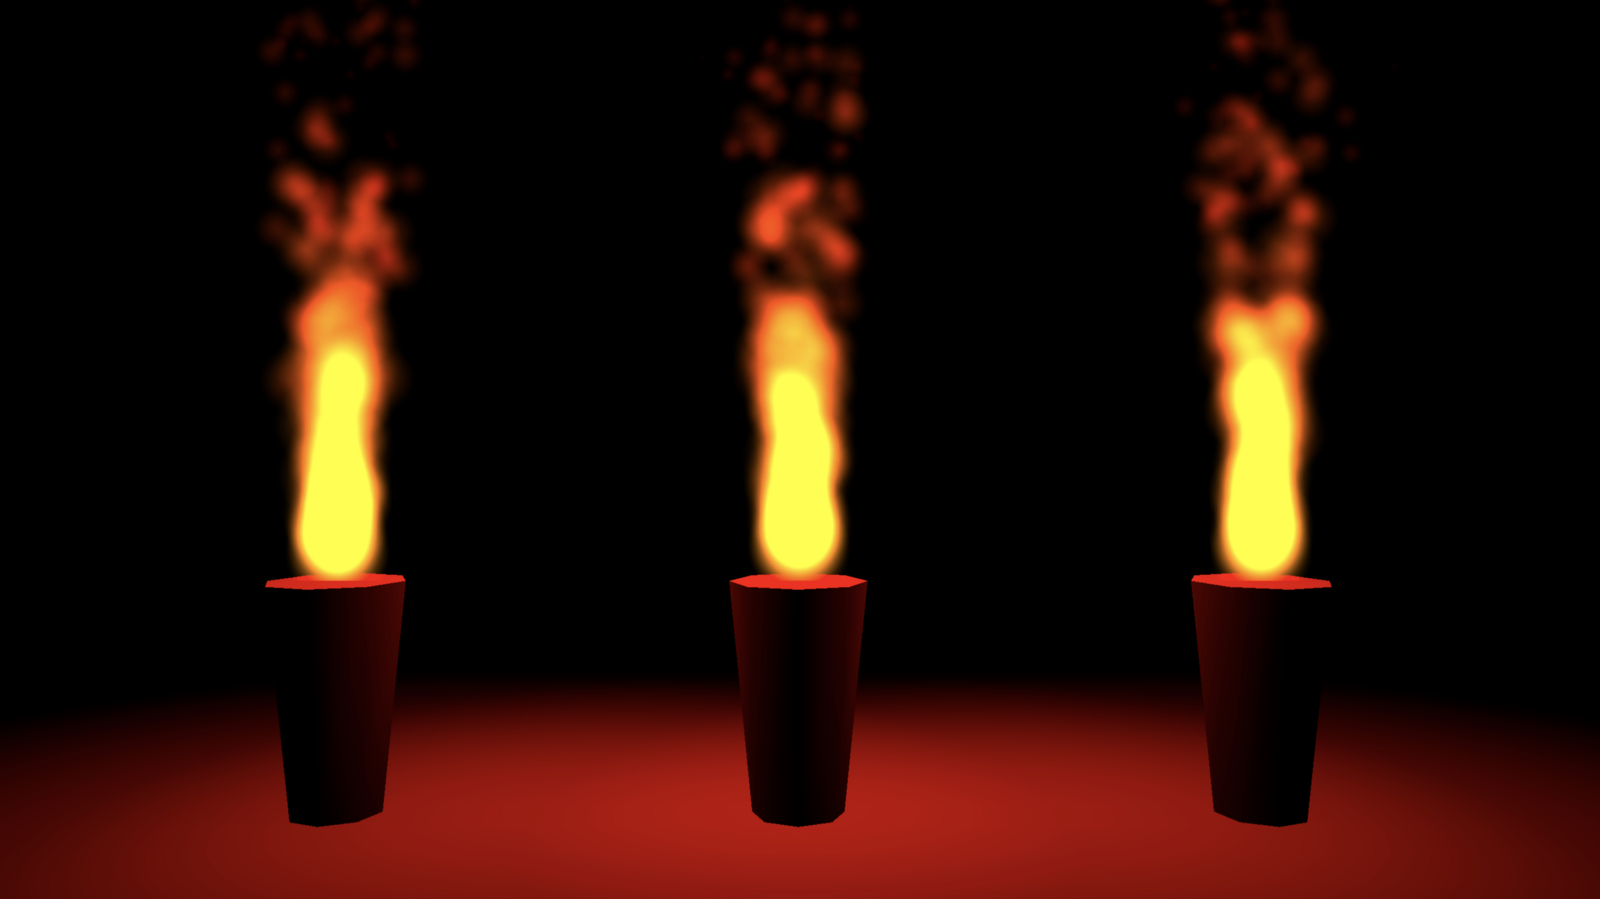 Bigger flame particles